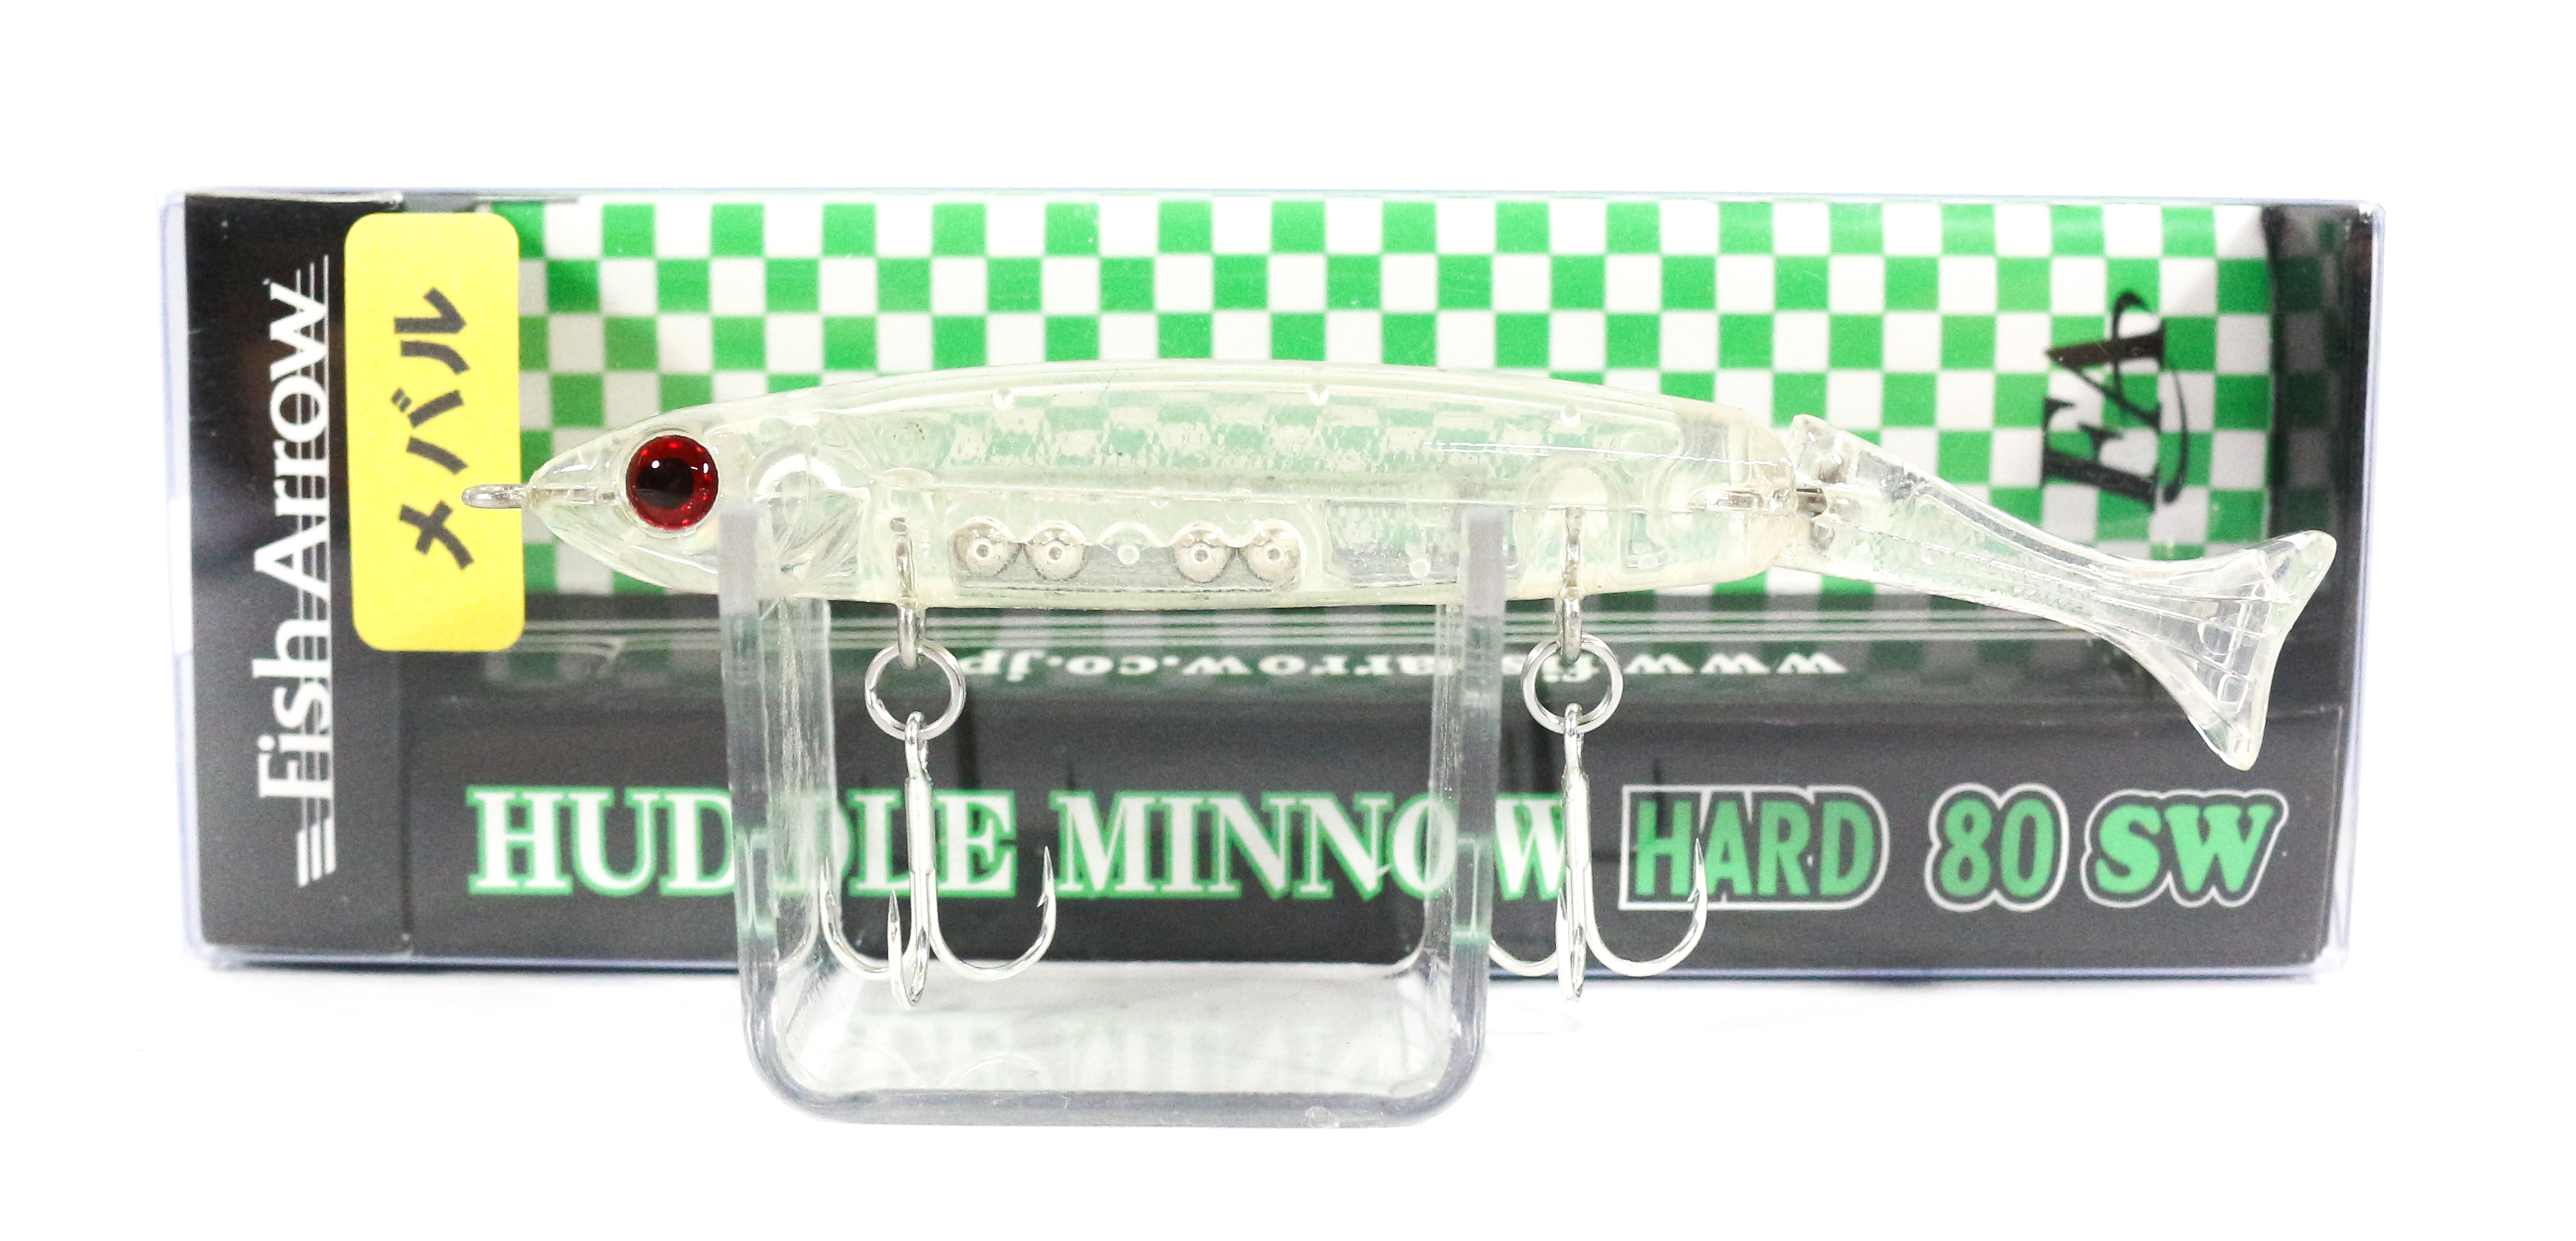 Fish Arrow Huddle Minnow Hard 80 SW Sinking Lure #M01 (0110)